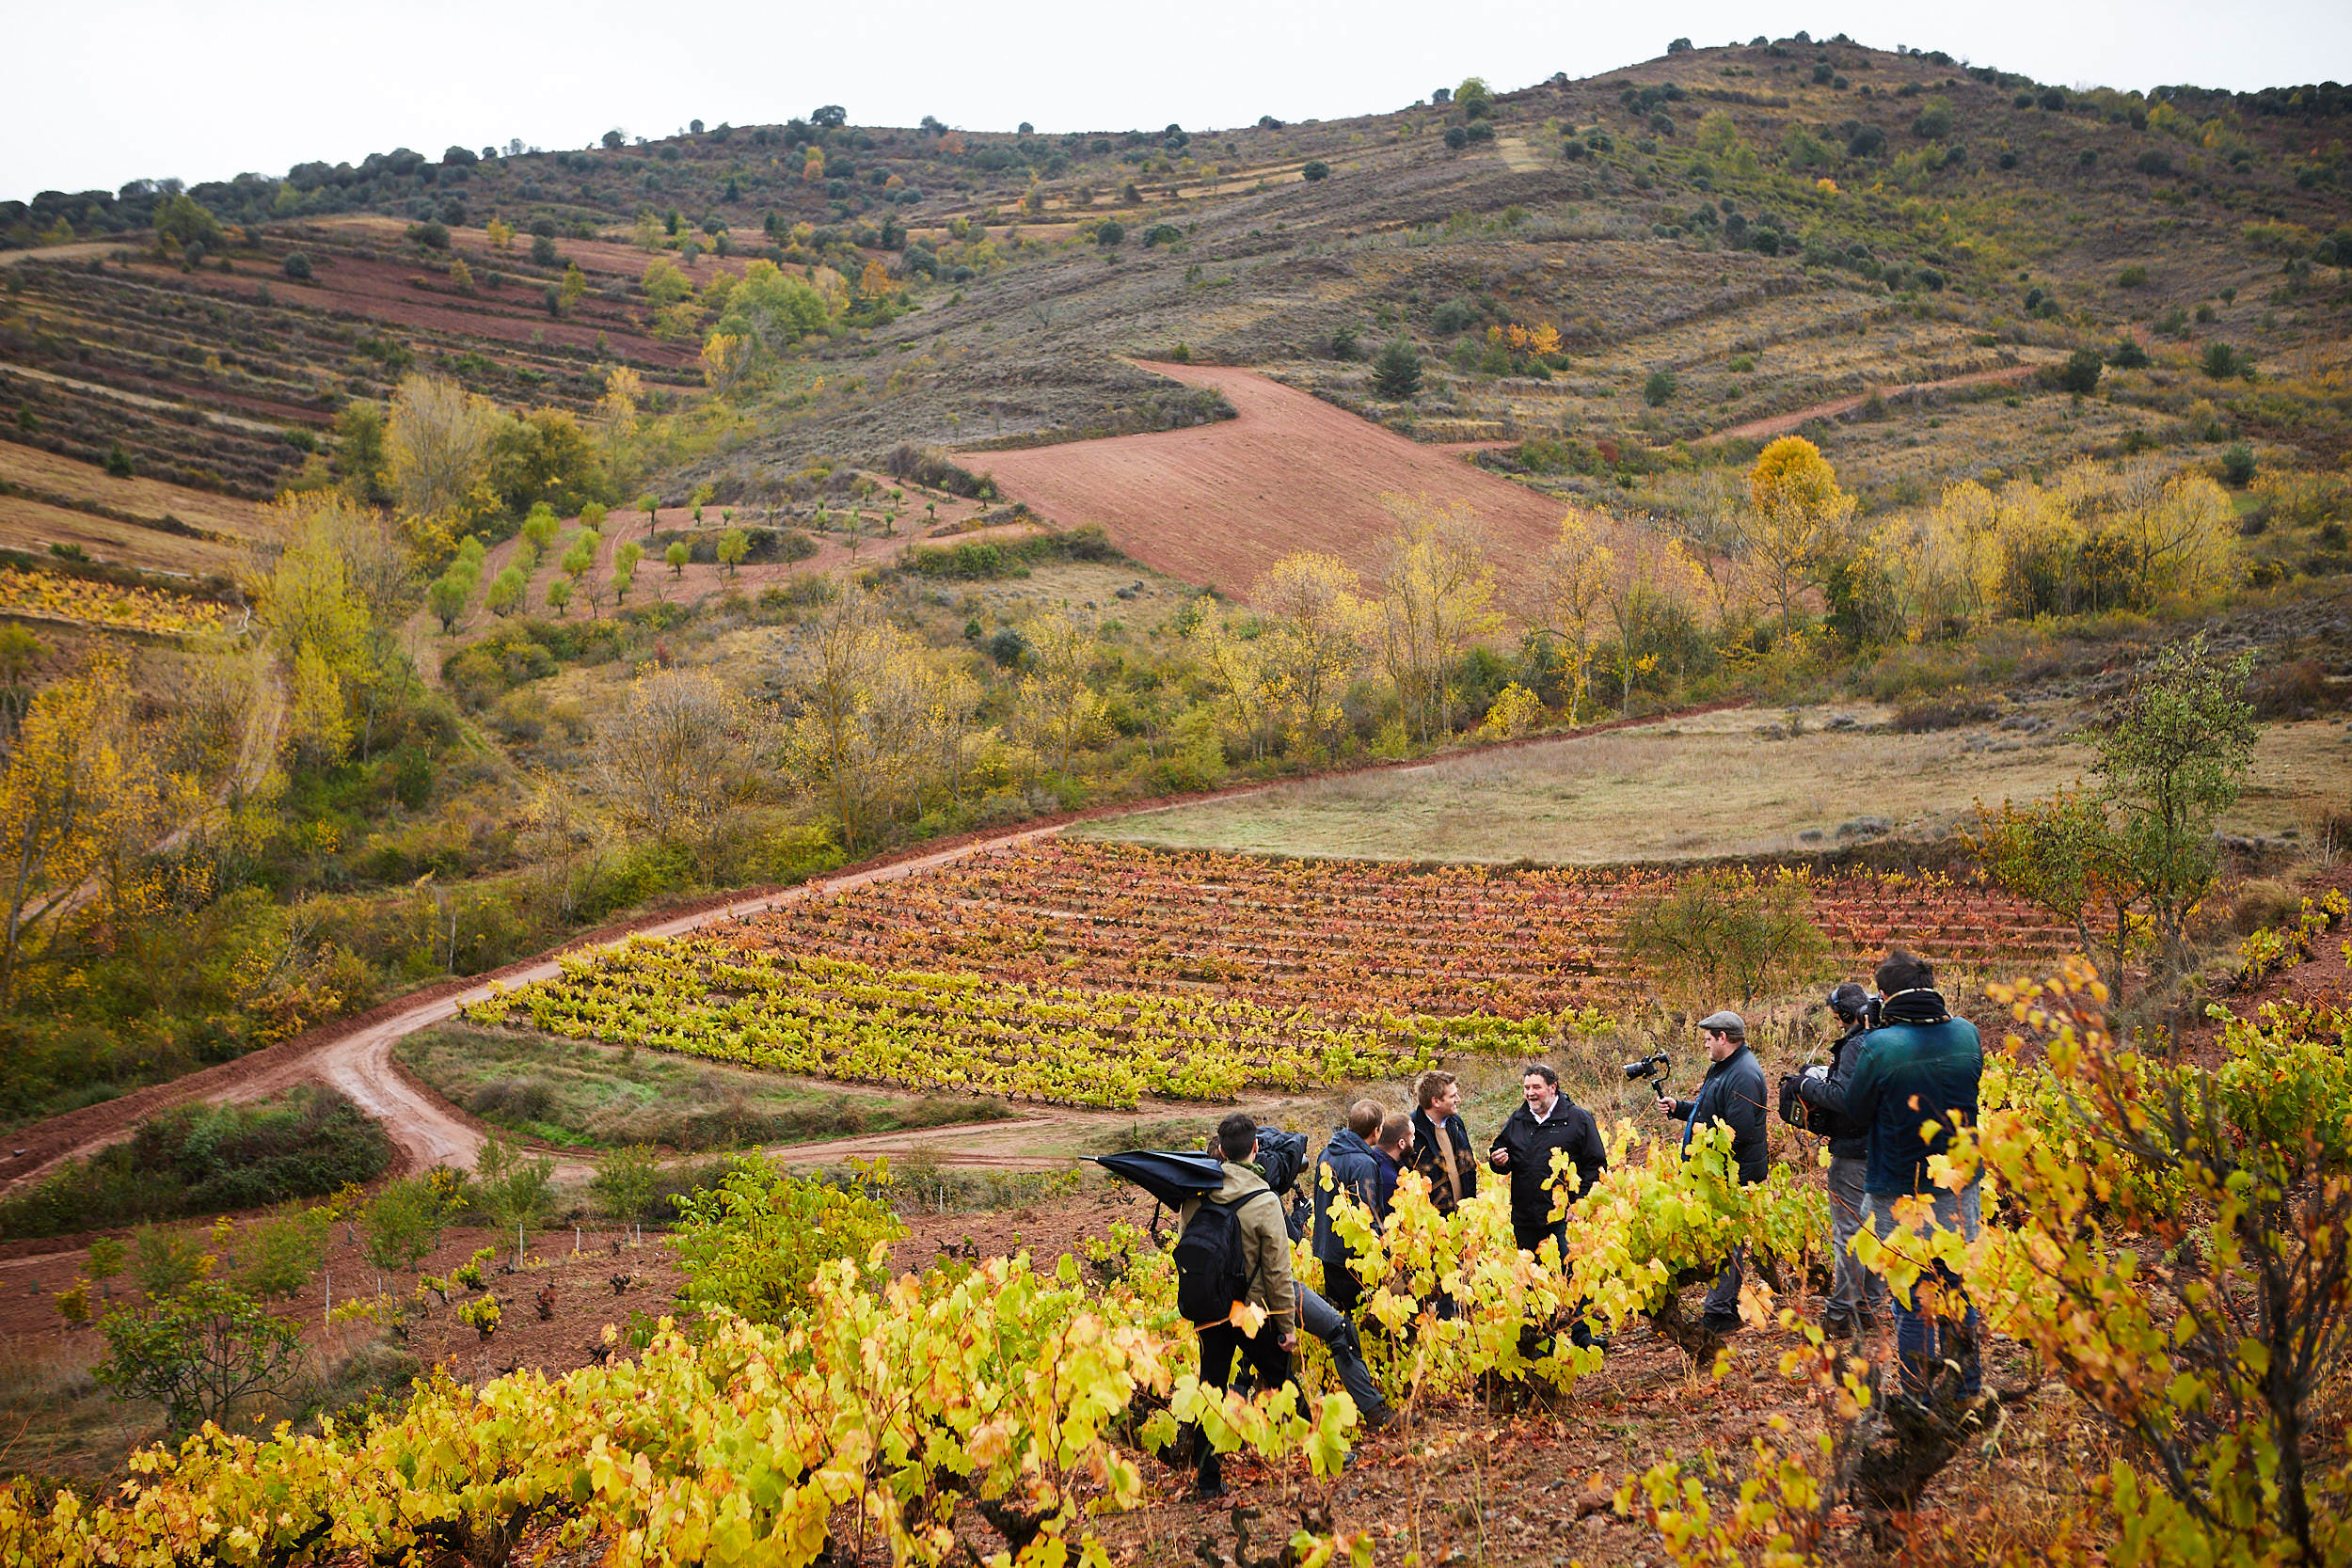 1711Basque_Country_Rioja_Editorial_Photographer_James_Sturcke_0024.jpg